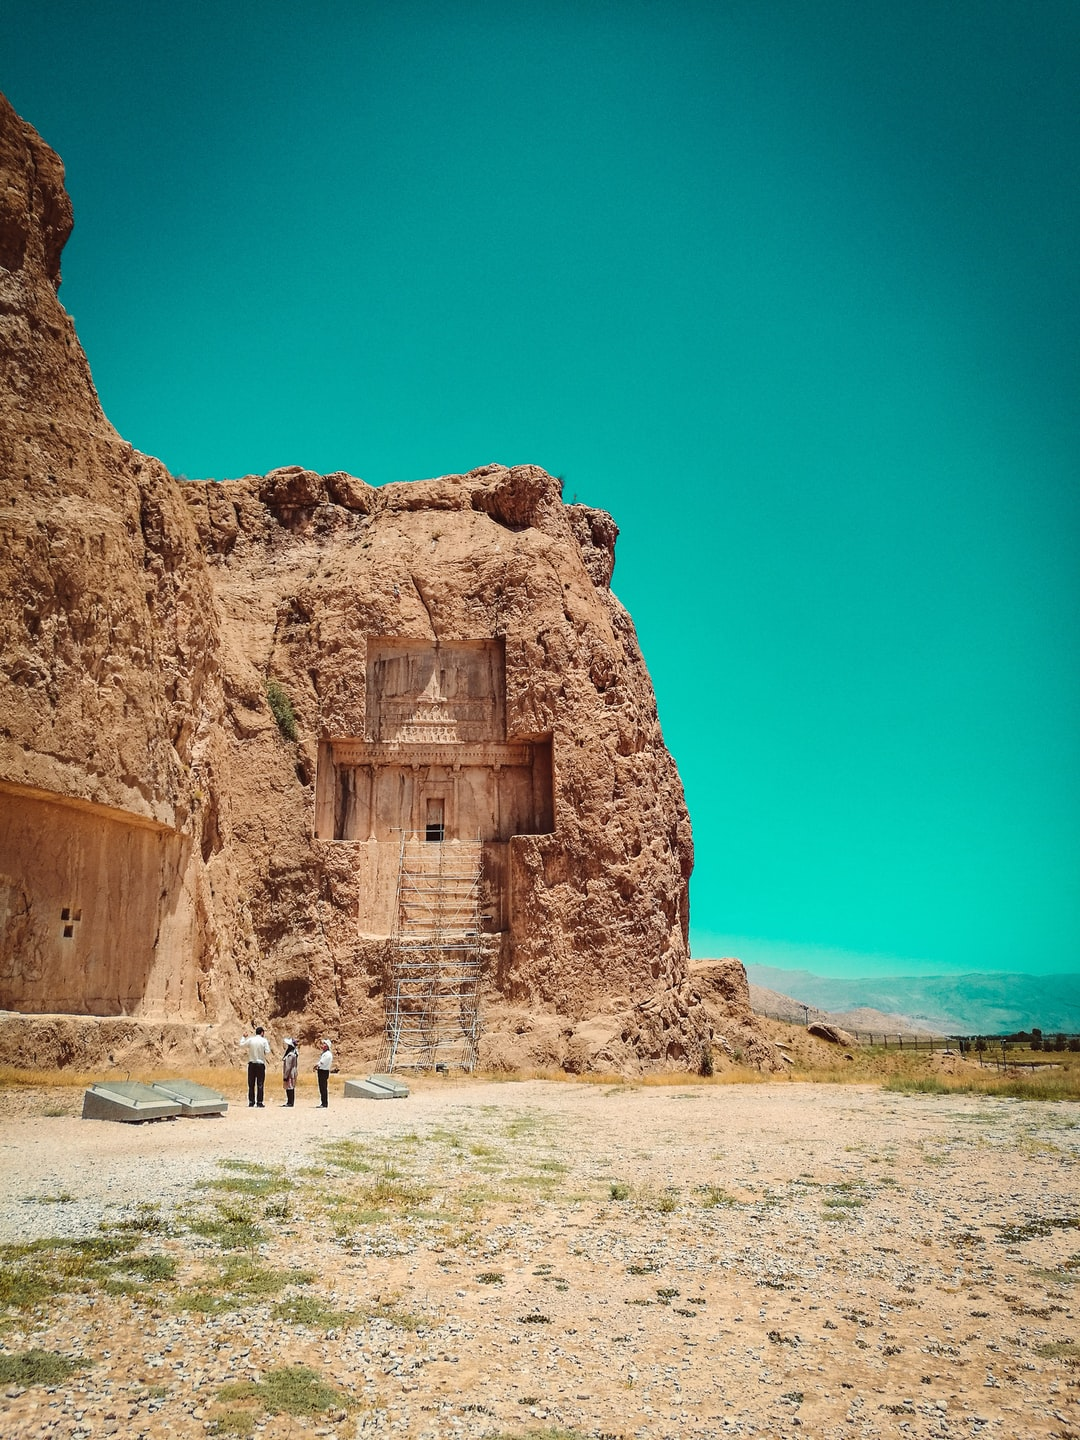 Naqsh-e Rostam is an ancient necropolis located about 12 km northwest of Persepolis, in Fars Province, Iran, with a group of ancient Iranian rock reliefs cut into the cliff, from both the Achaemenid and Sassanid periods.